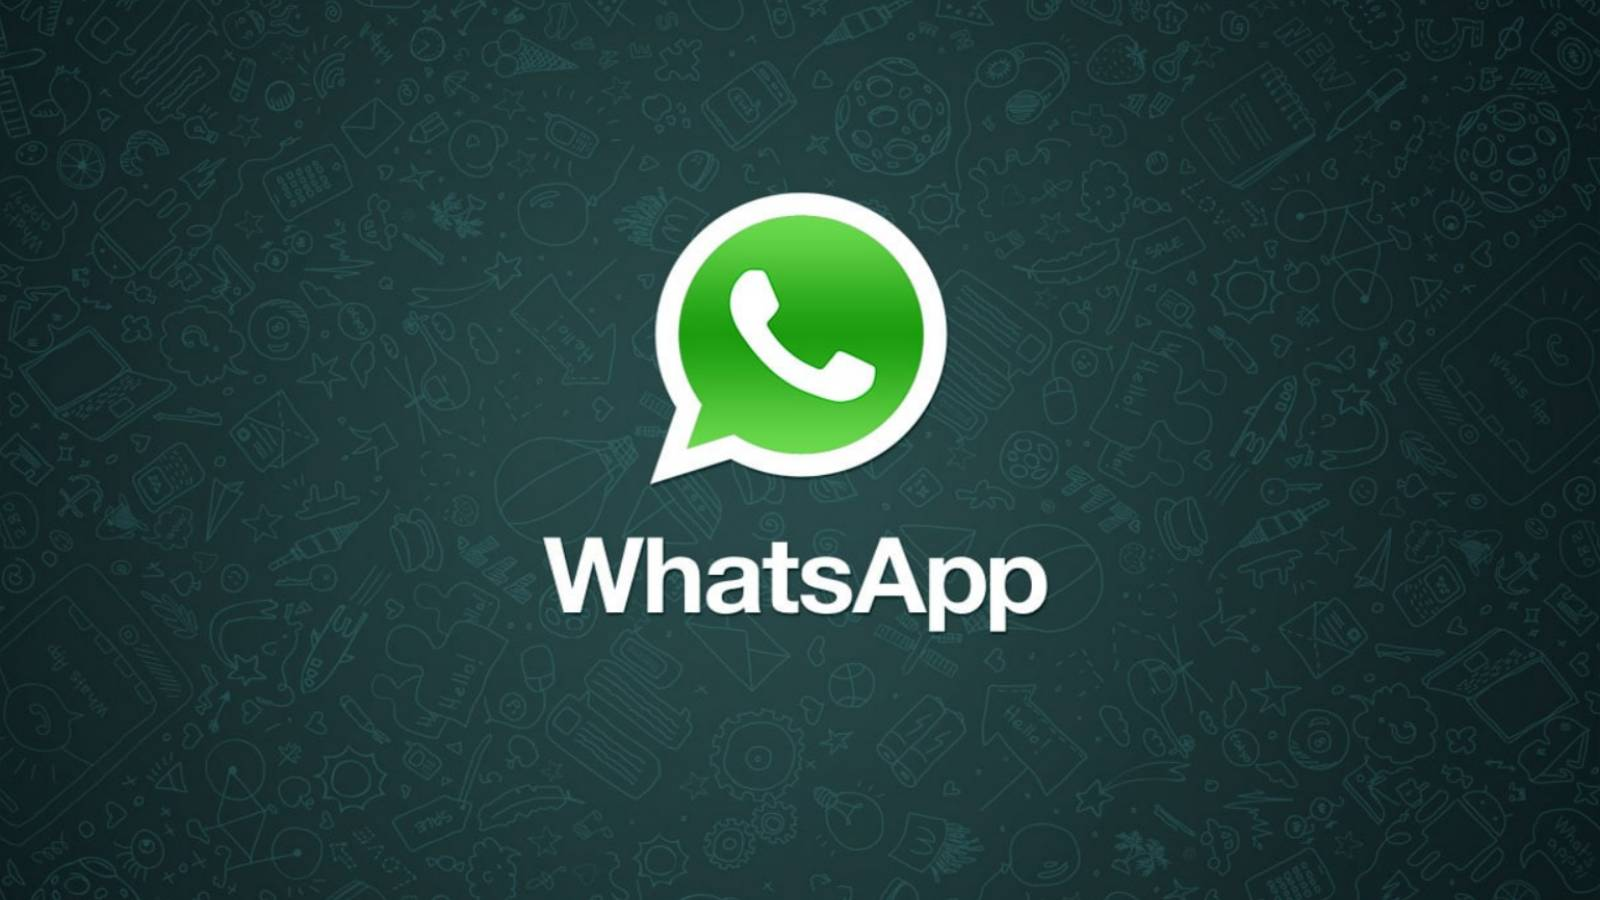 WhatsApp obligatoriu